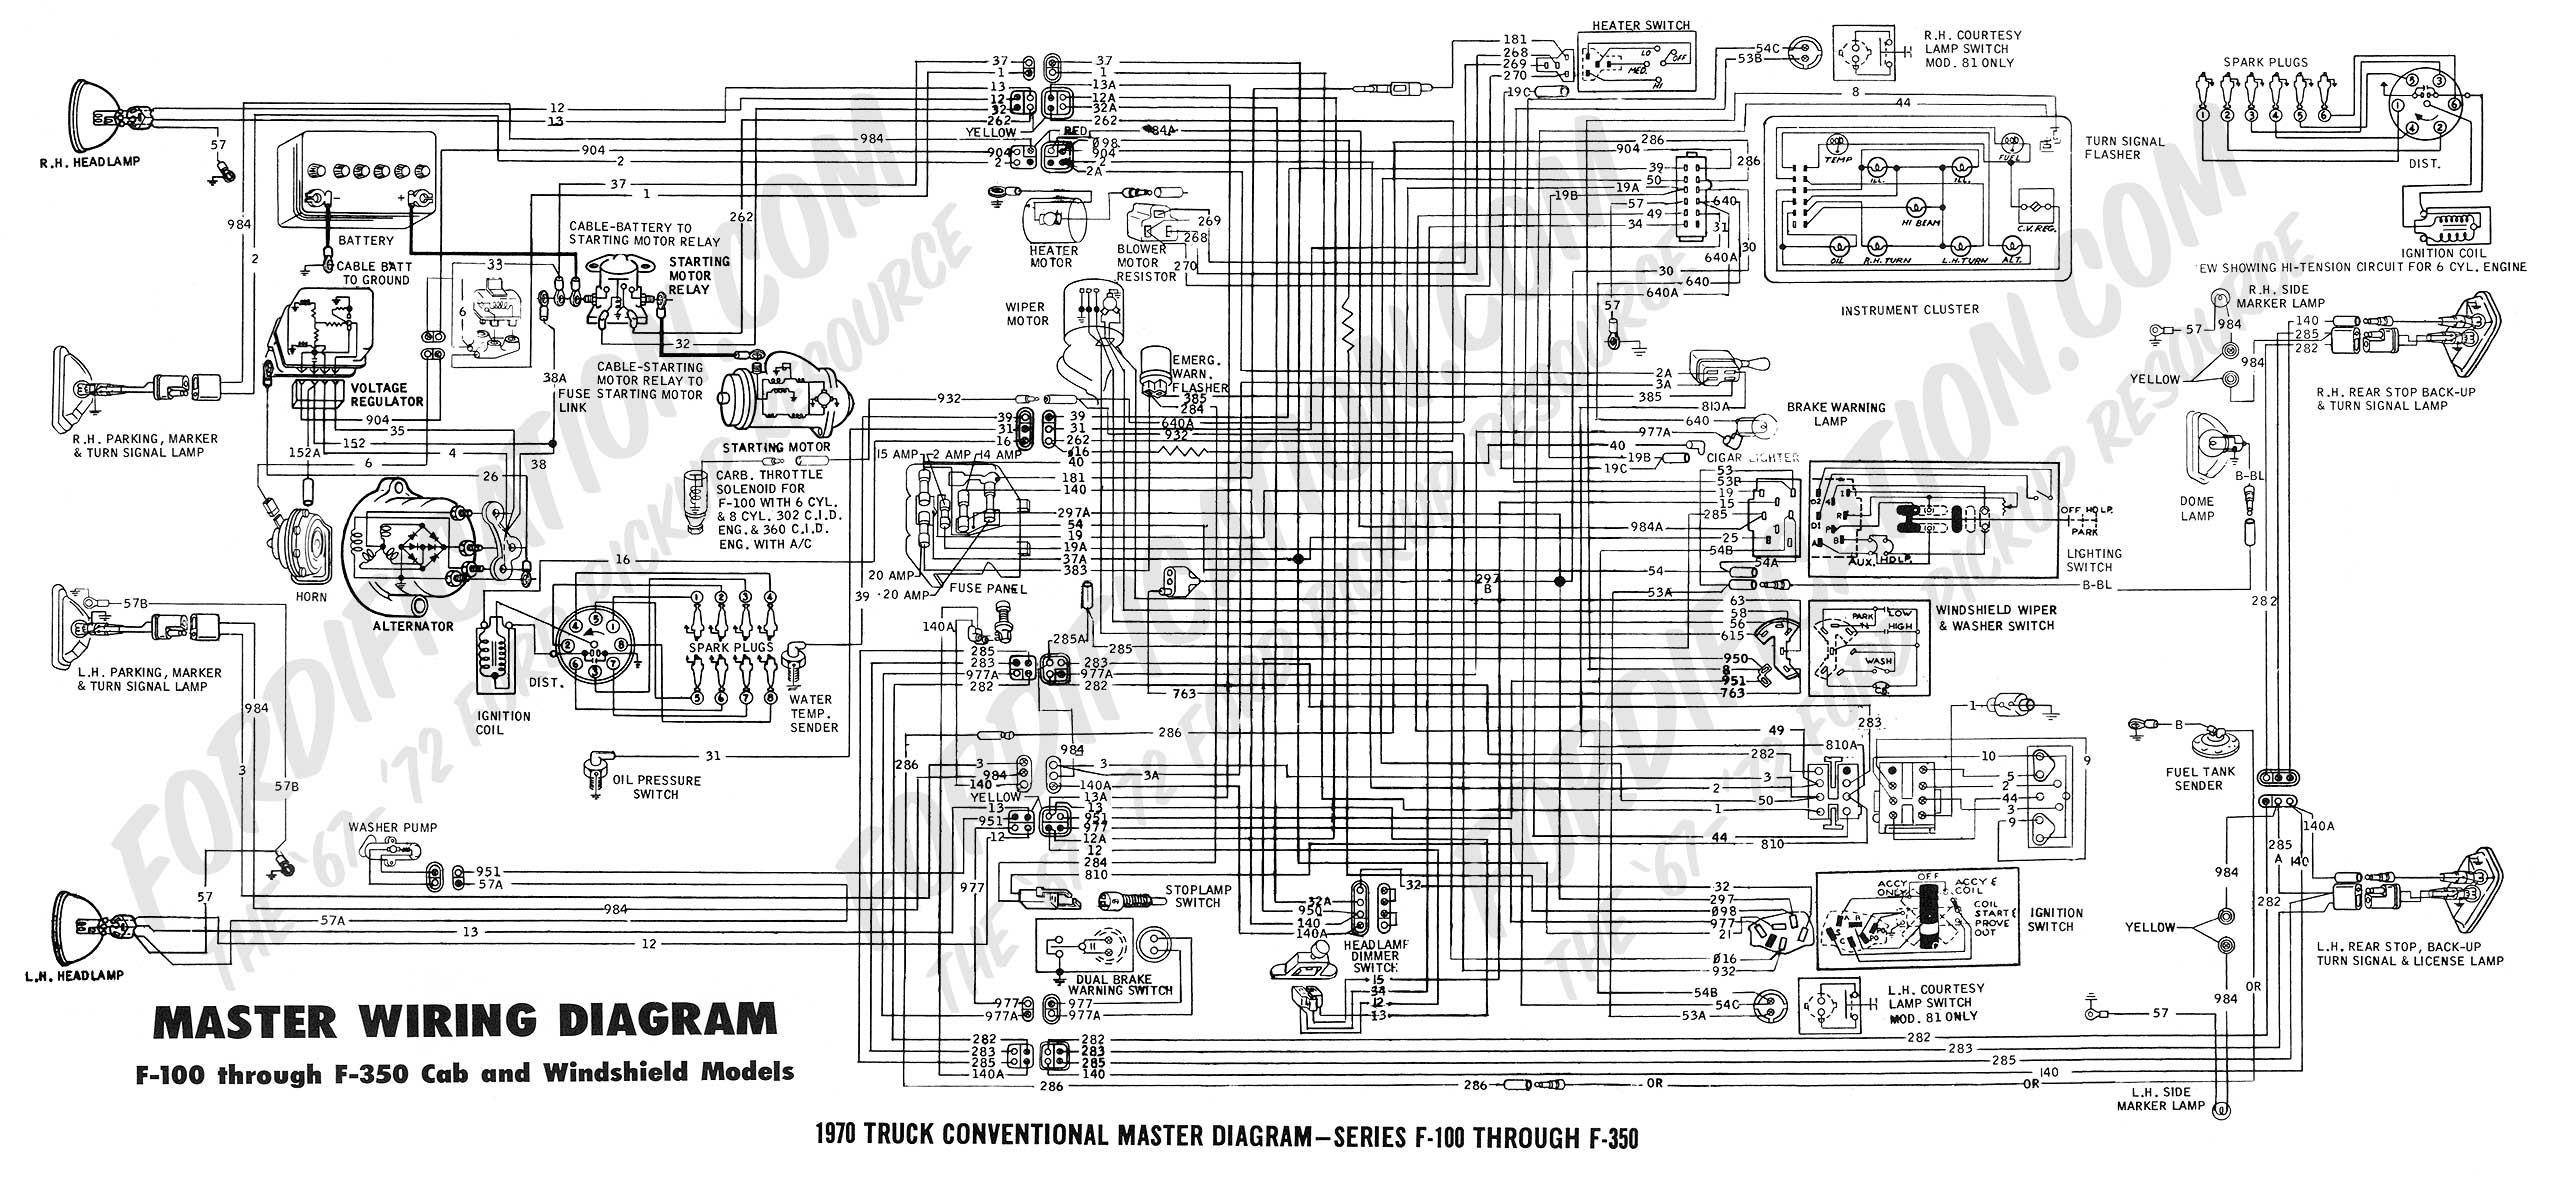 wiring diagram 70_master f450 wiring diagram pto wiring diagram f450 \u2022 wiring diagrams j wiring diagram for 2007 ford expedition at soozxer.org